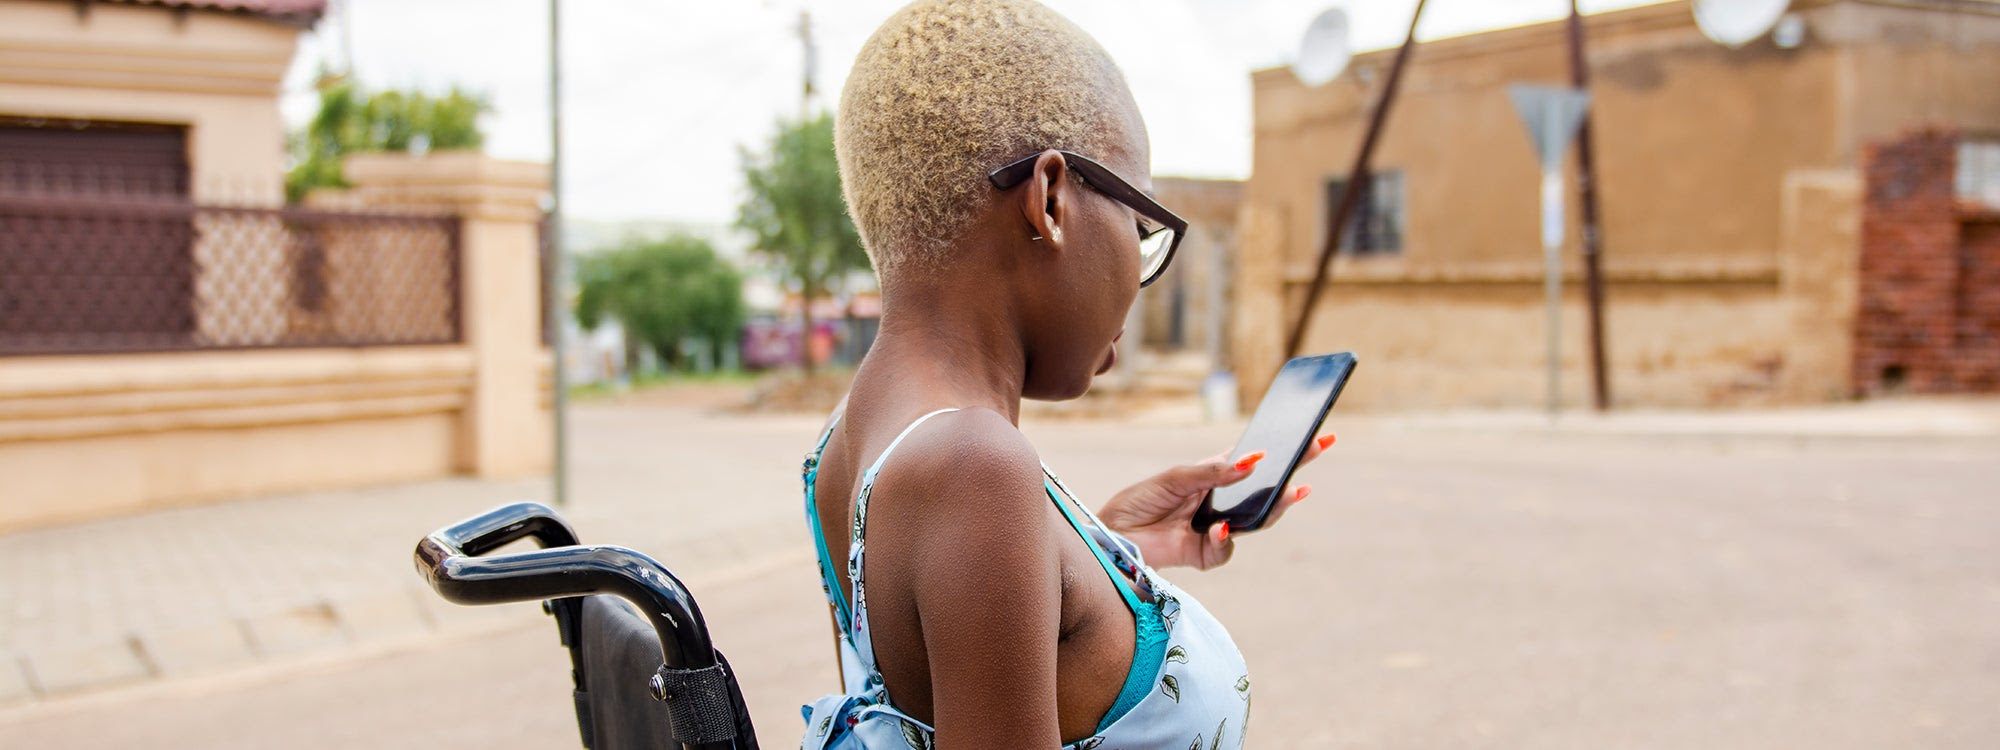 A black woman with short hair sits in a wheelchair and looks at her phone